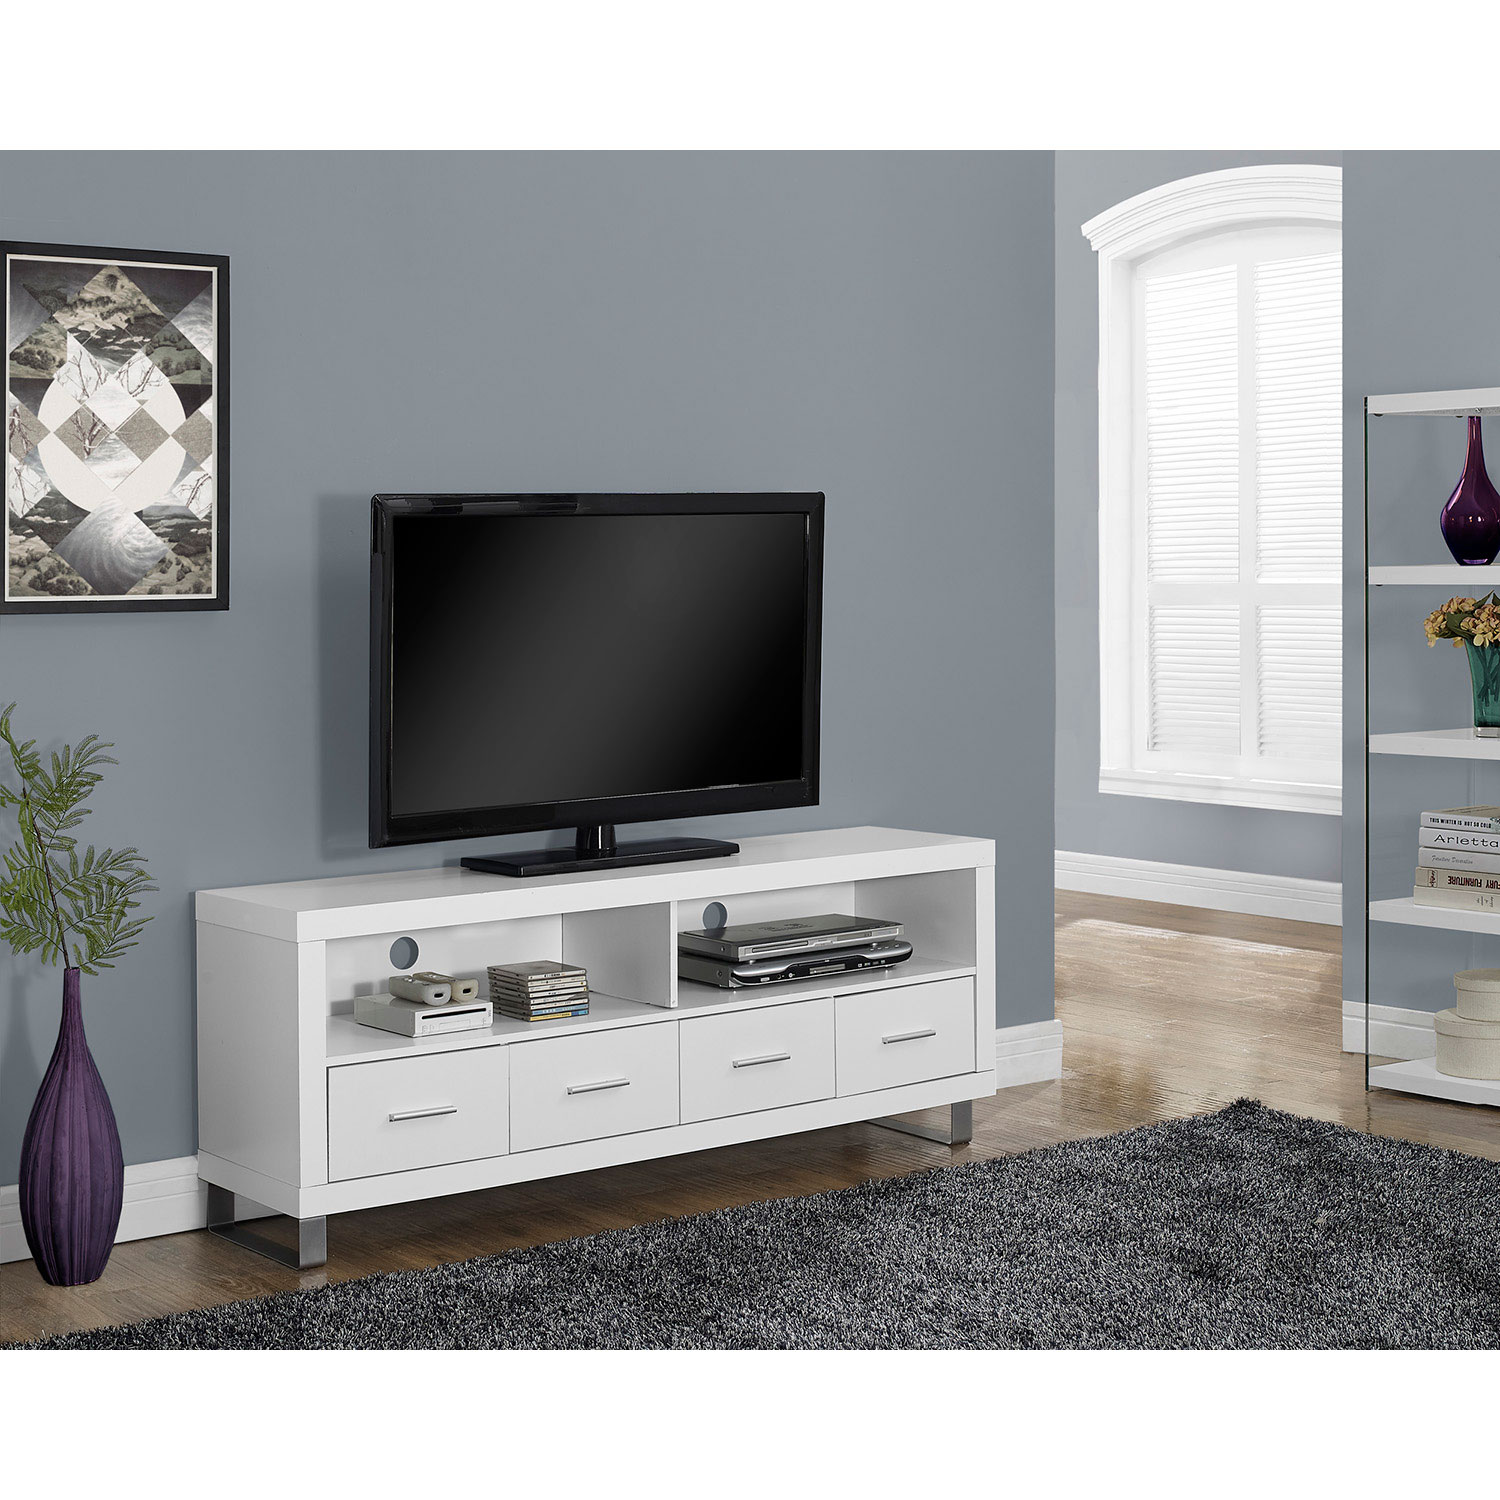 monarch tv stand for tvs up to   white  tv stands  best buy canada. monarch tv stand for tvs up to   white  tv stands  best buy